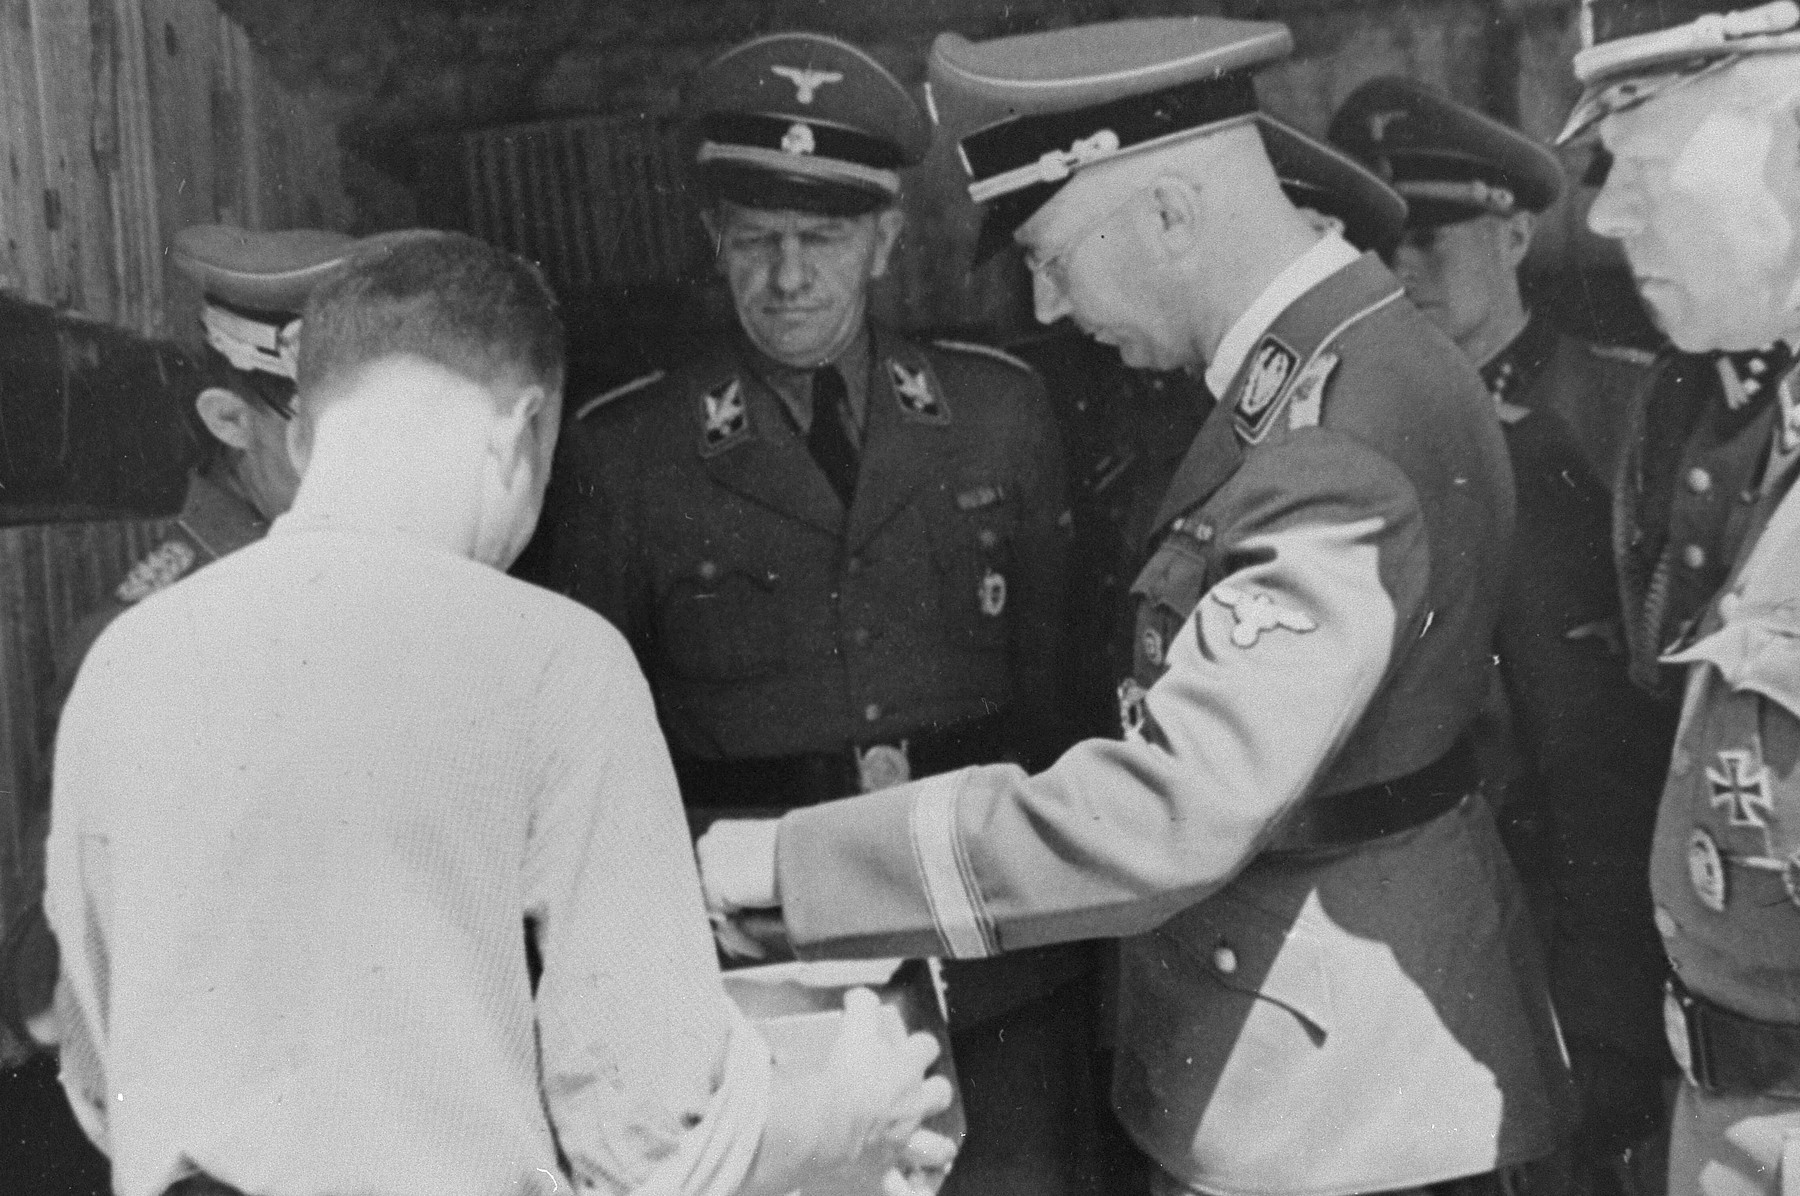 Reichsfuehrer SS Heinrich Himmler examines the contents of a box during an inspection tour of the Monowitz-Buna building site.     Pictured on the far right is Himmler's bodyguard, SS Hauptsturmfuehrer Josef Kiermaier.  In the center is SS-Gruppenfuehrer Hanns Johst.